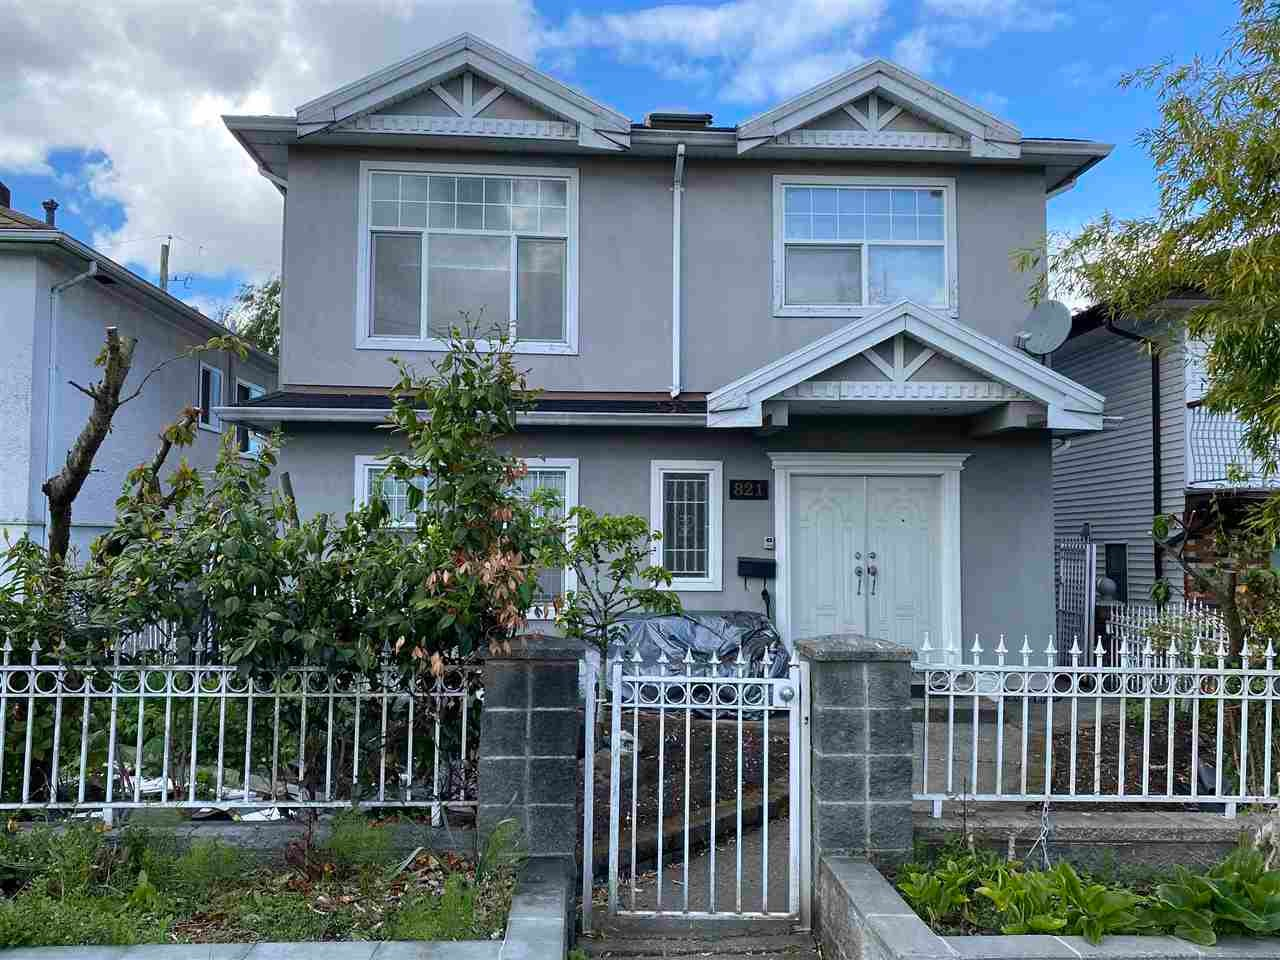 821 NANAIMO STREET - Hastings House/Single Family for sale, 6 Bedrooms (R2576331) - #1